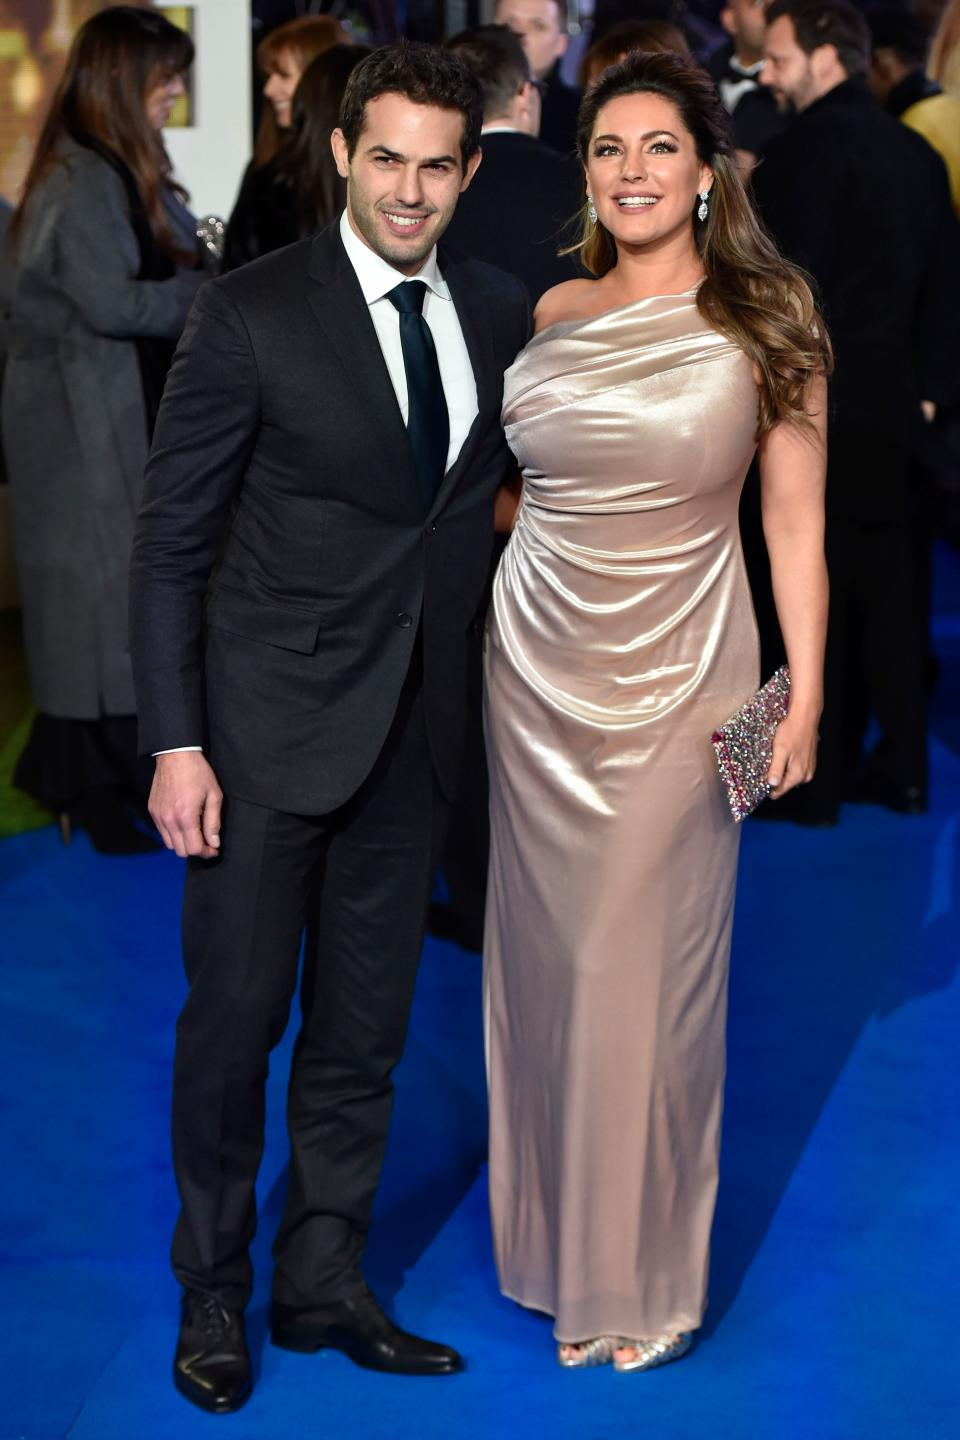 Kelly Brook is in a relationship with Jeremy Parisi. (Photo credit should read NIKLAS HALLEN/AFP via Getty Images)